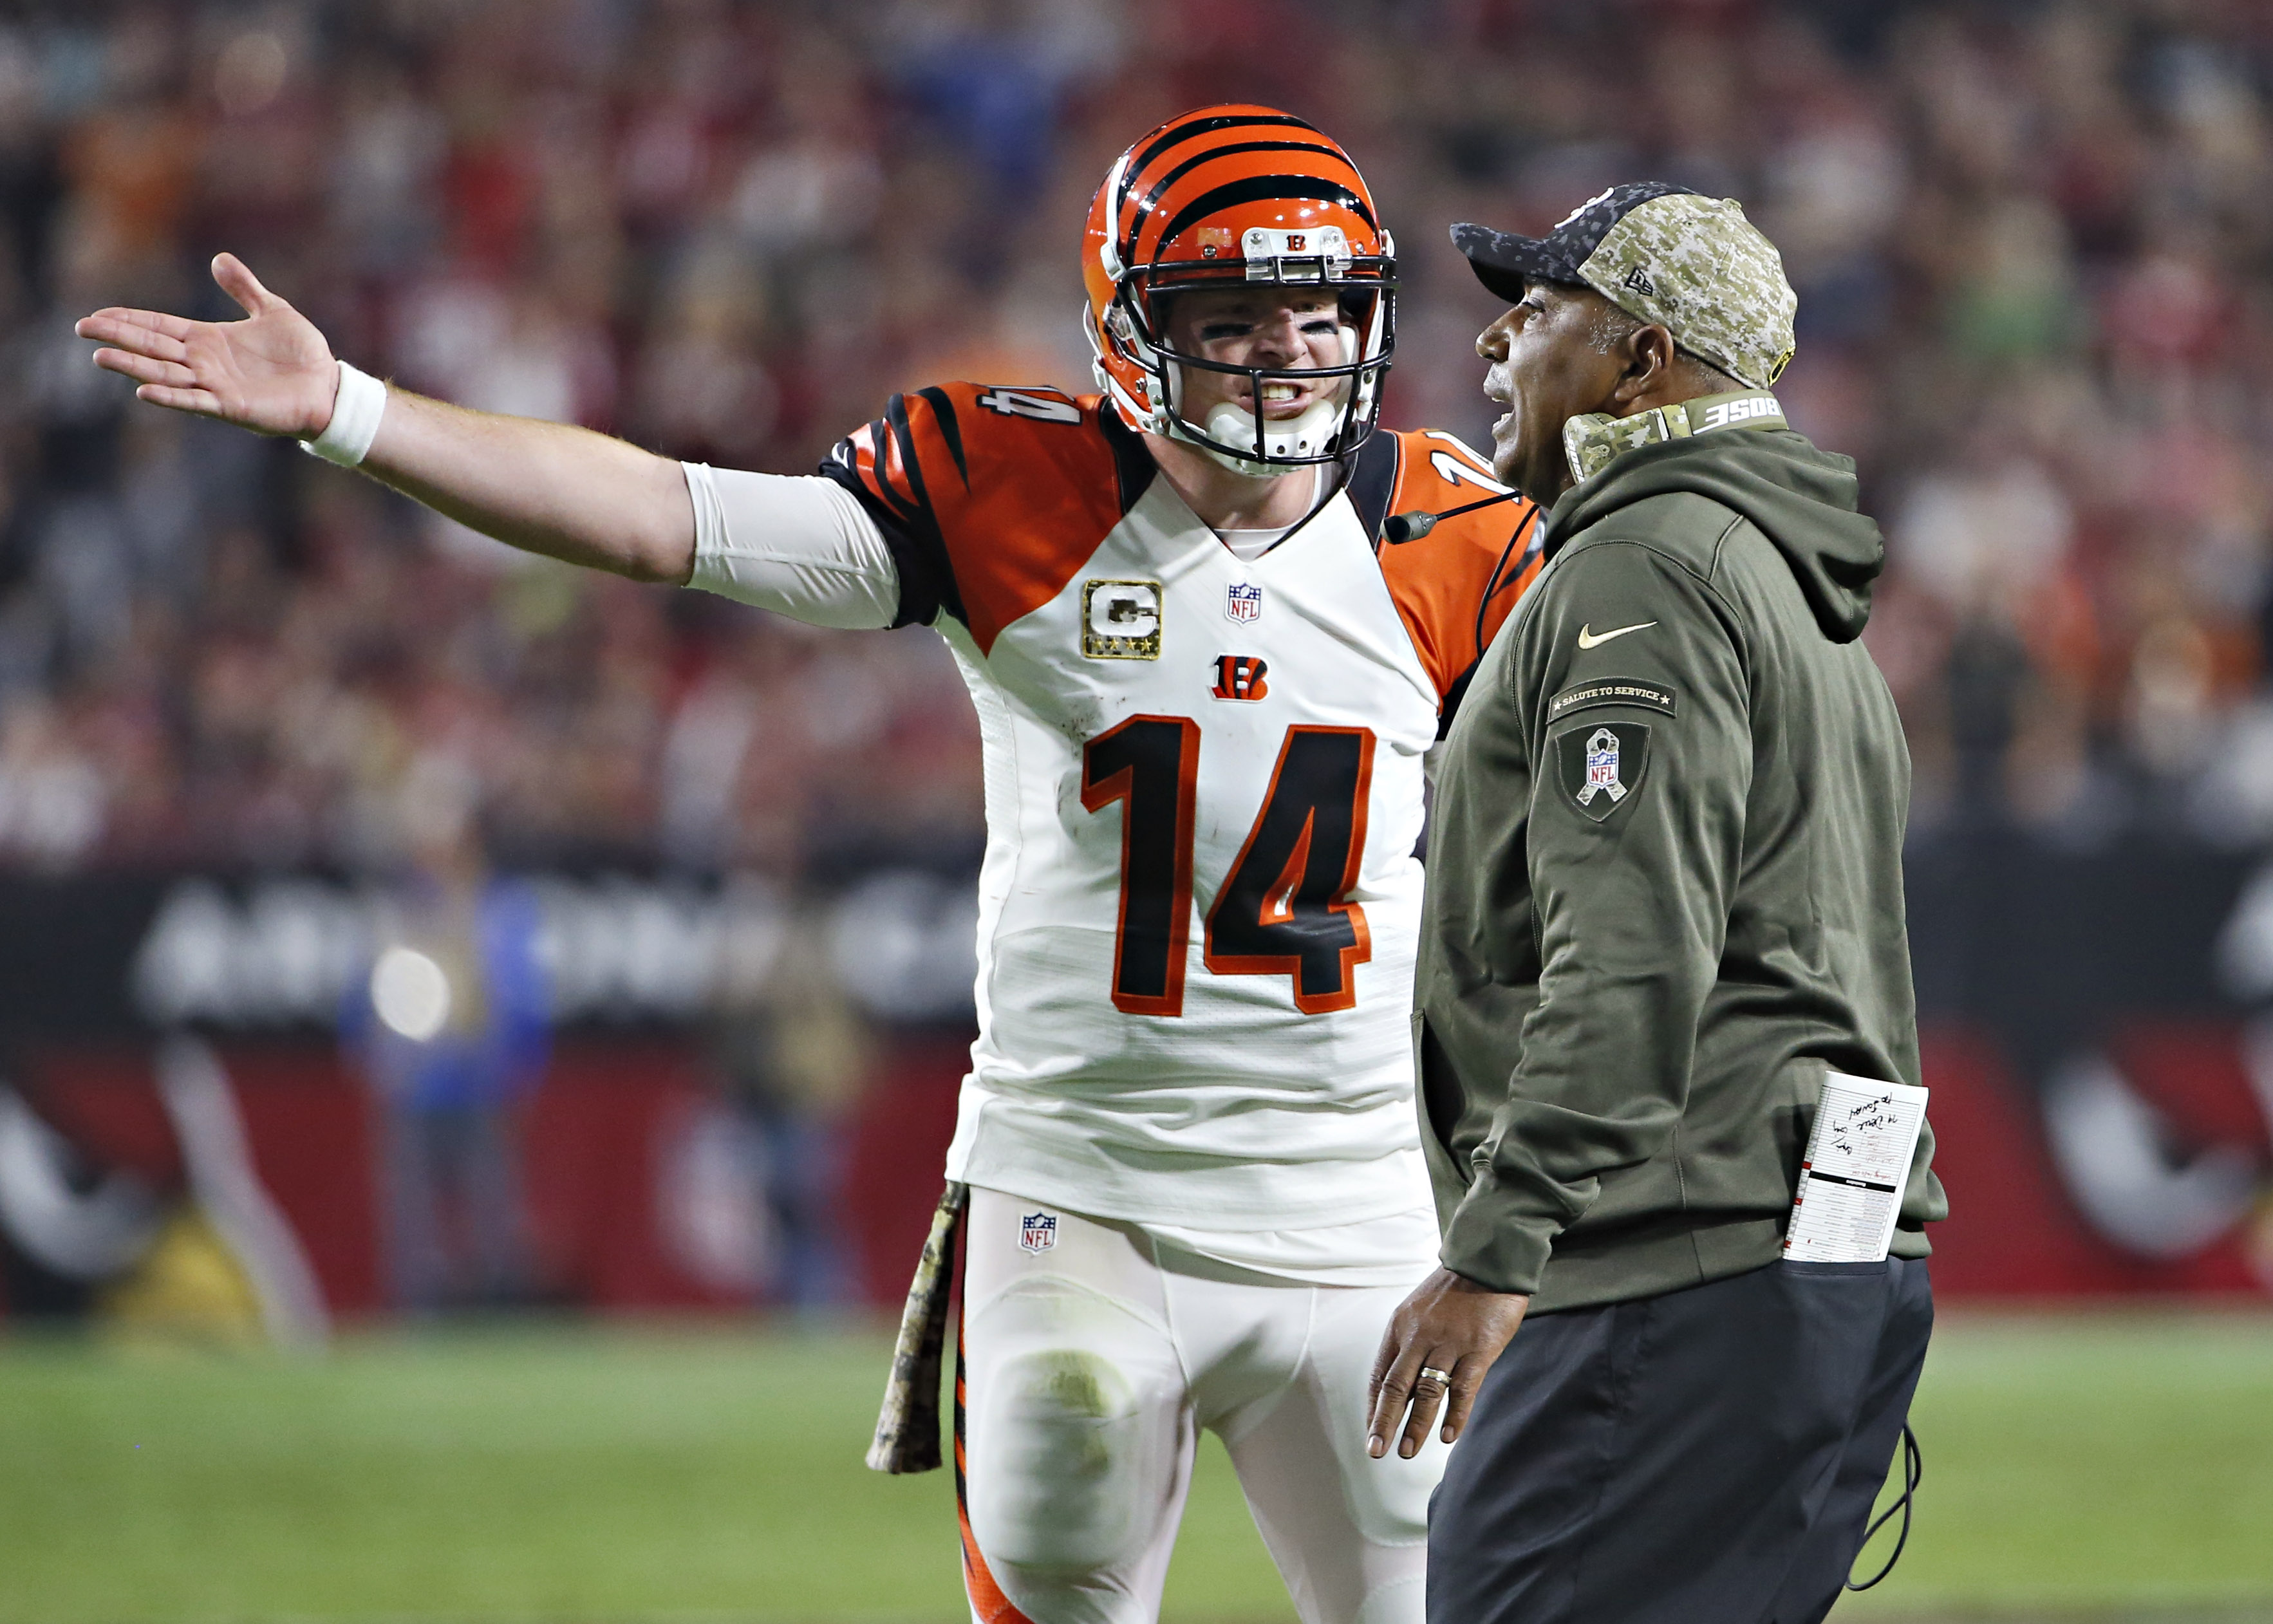 Cincinnati Bengals quarterback Andy Dalton (14) and Cincinnati Bengals head coach Marvin Lewis discuss a call during the first half of an NFL  football game against the Arizona Cardinals, Sunday, Nov. 22, 2015, in Glendale, Ariz. (AP Photo/Ross D. Frankli